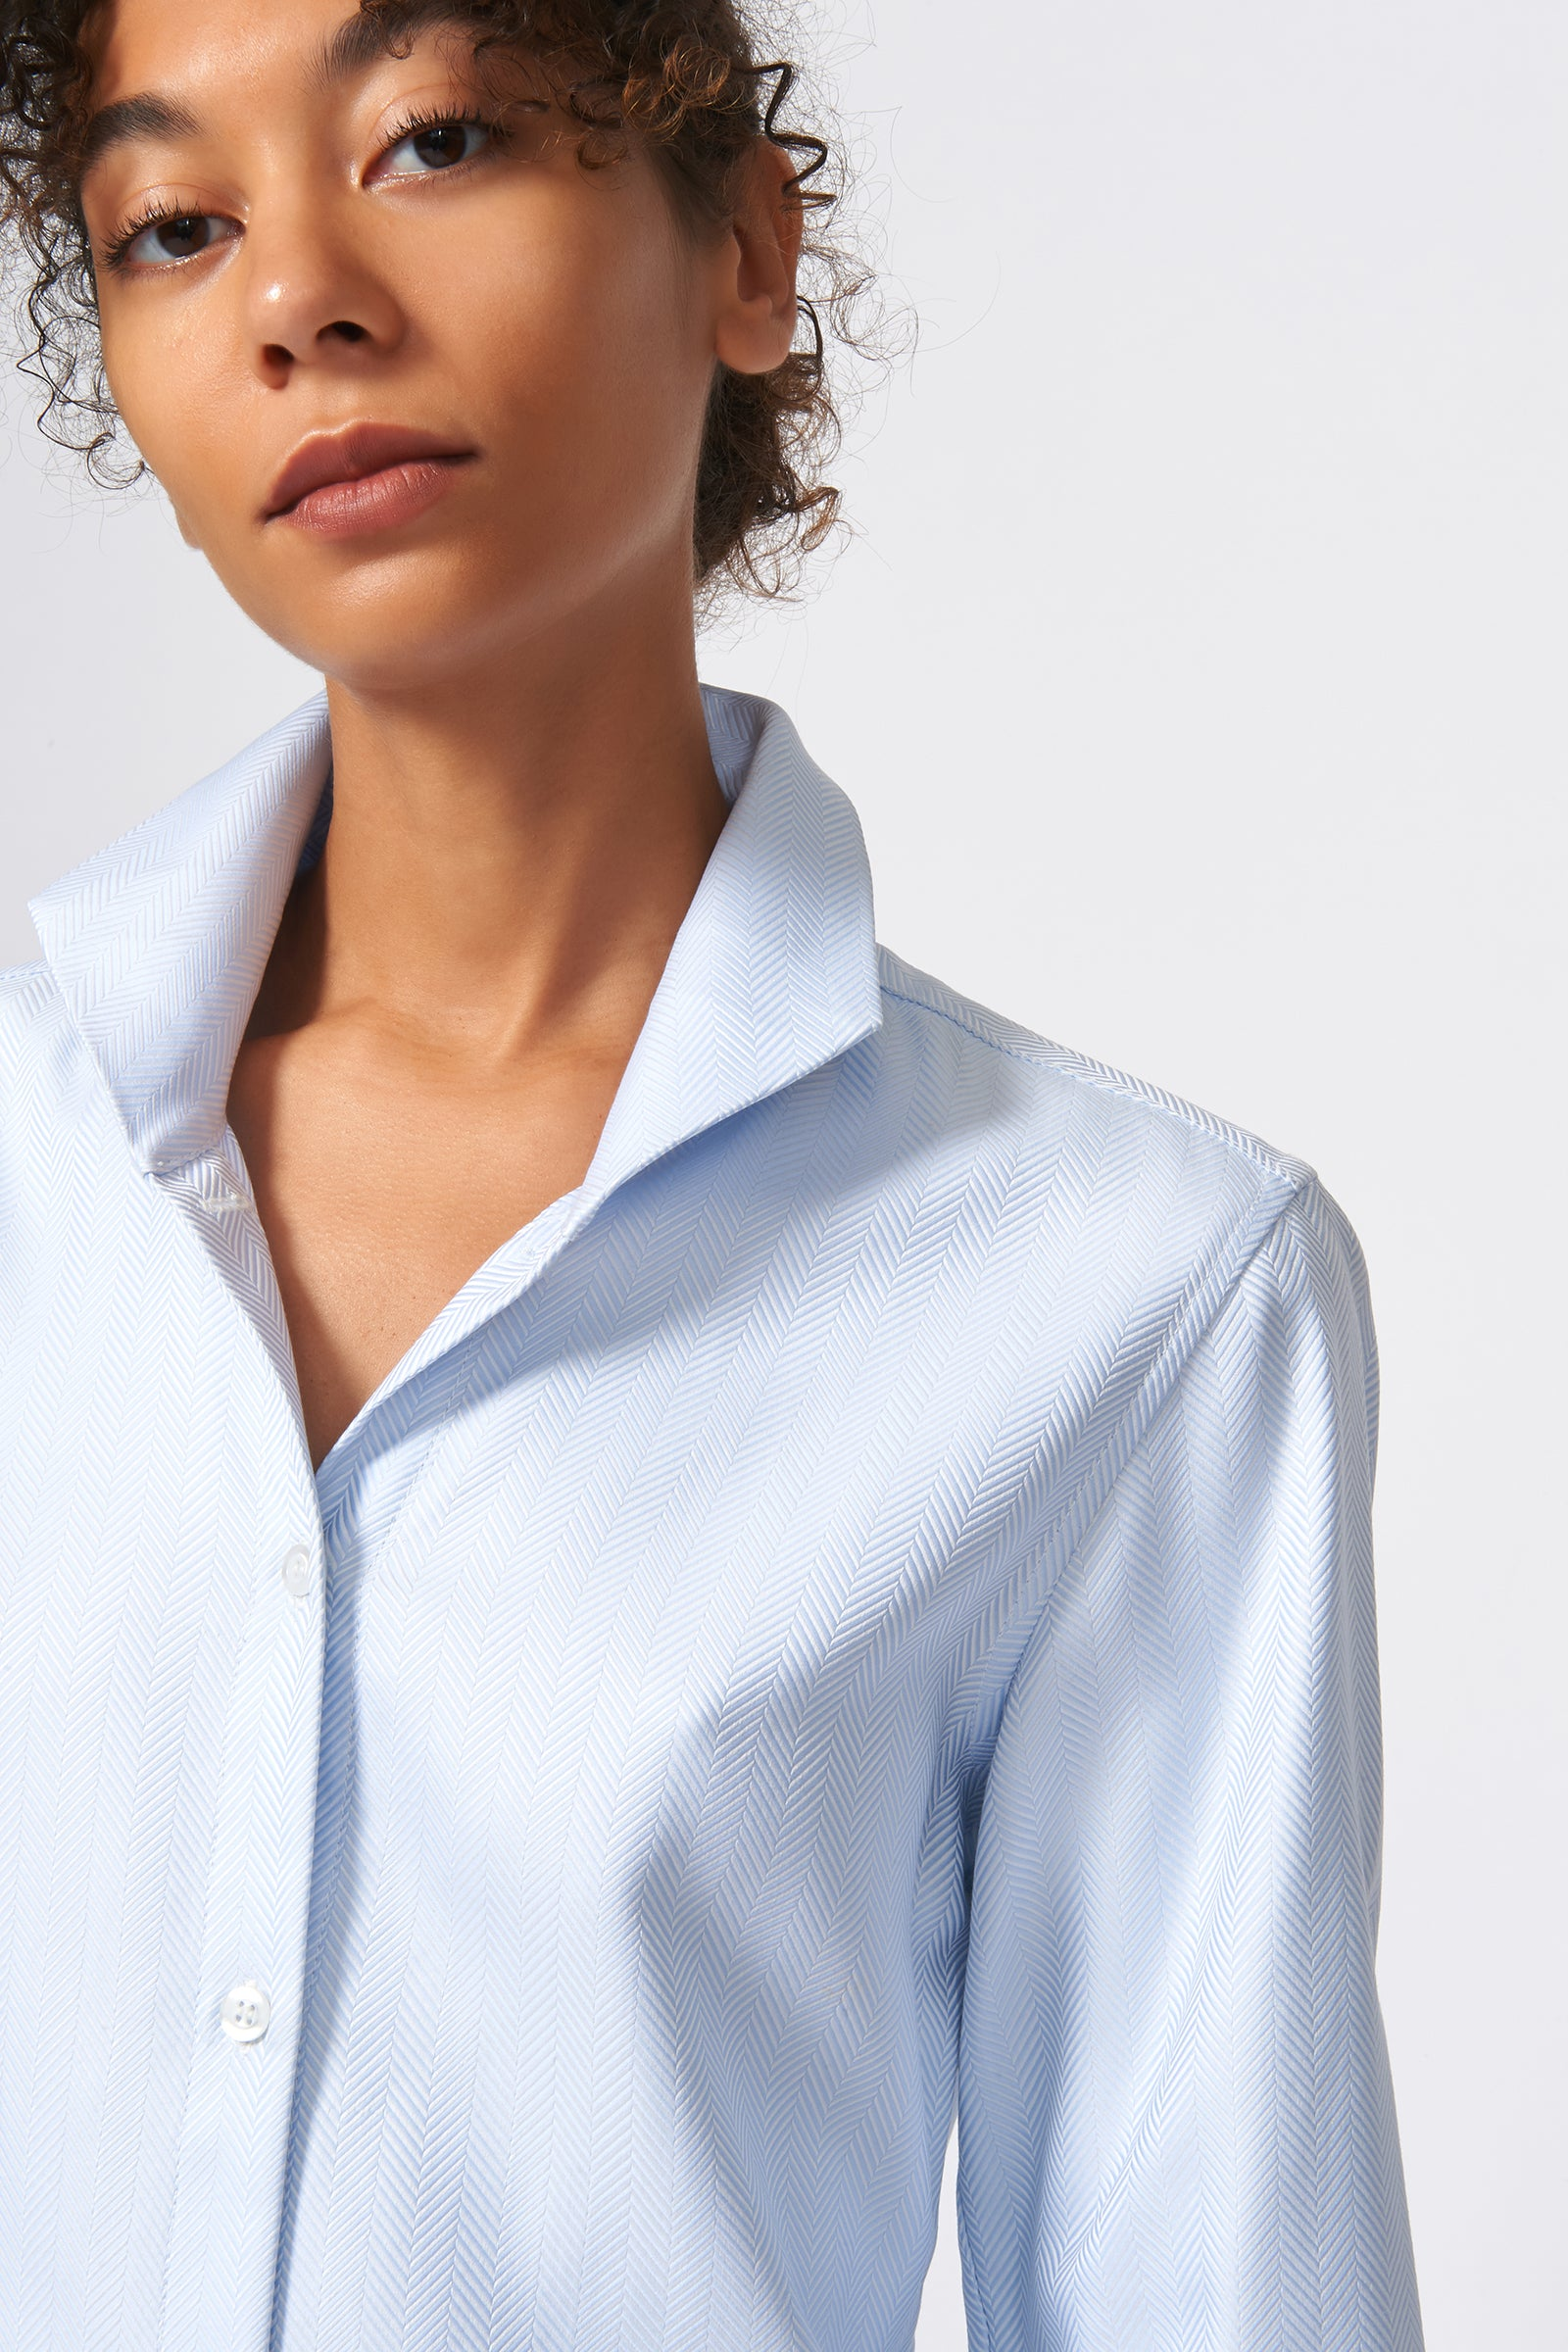 Kal Rieman Ginna Tailored Shirt in French Blue Herringbone on Model Detail View